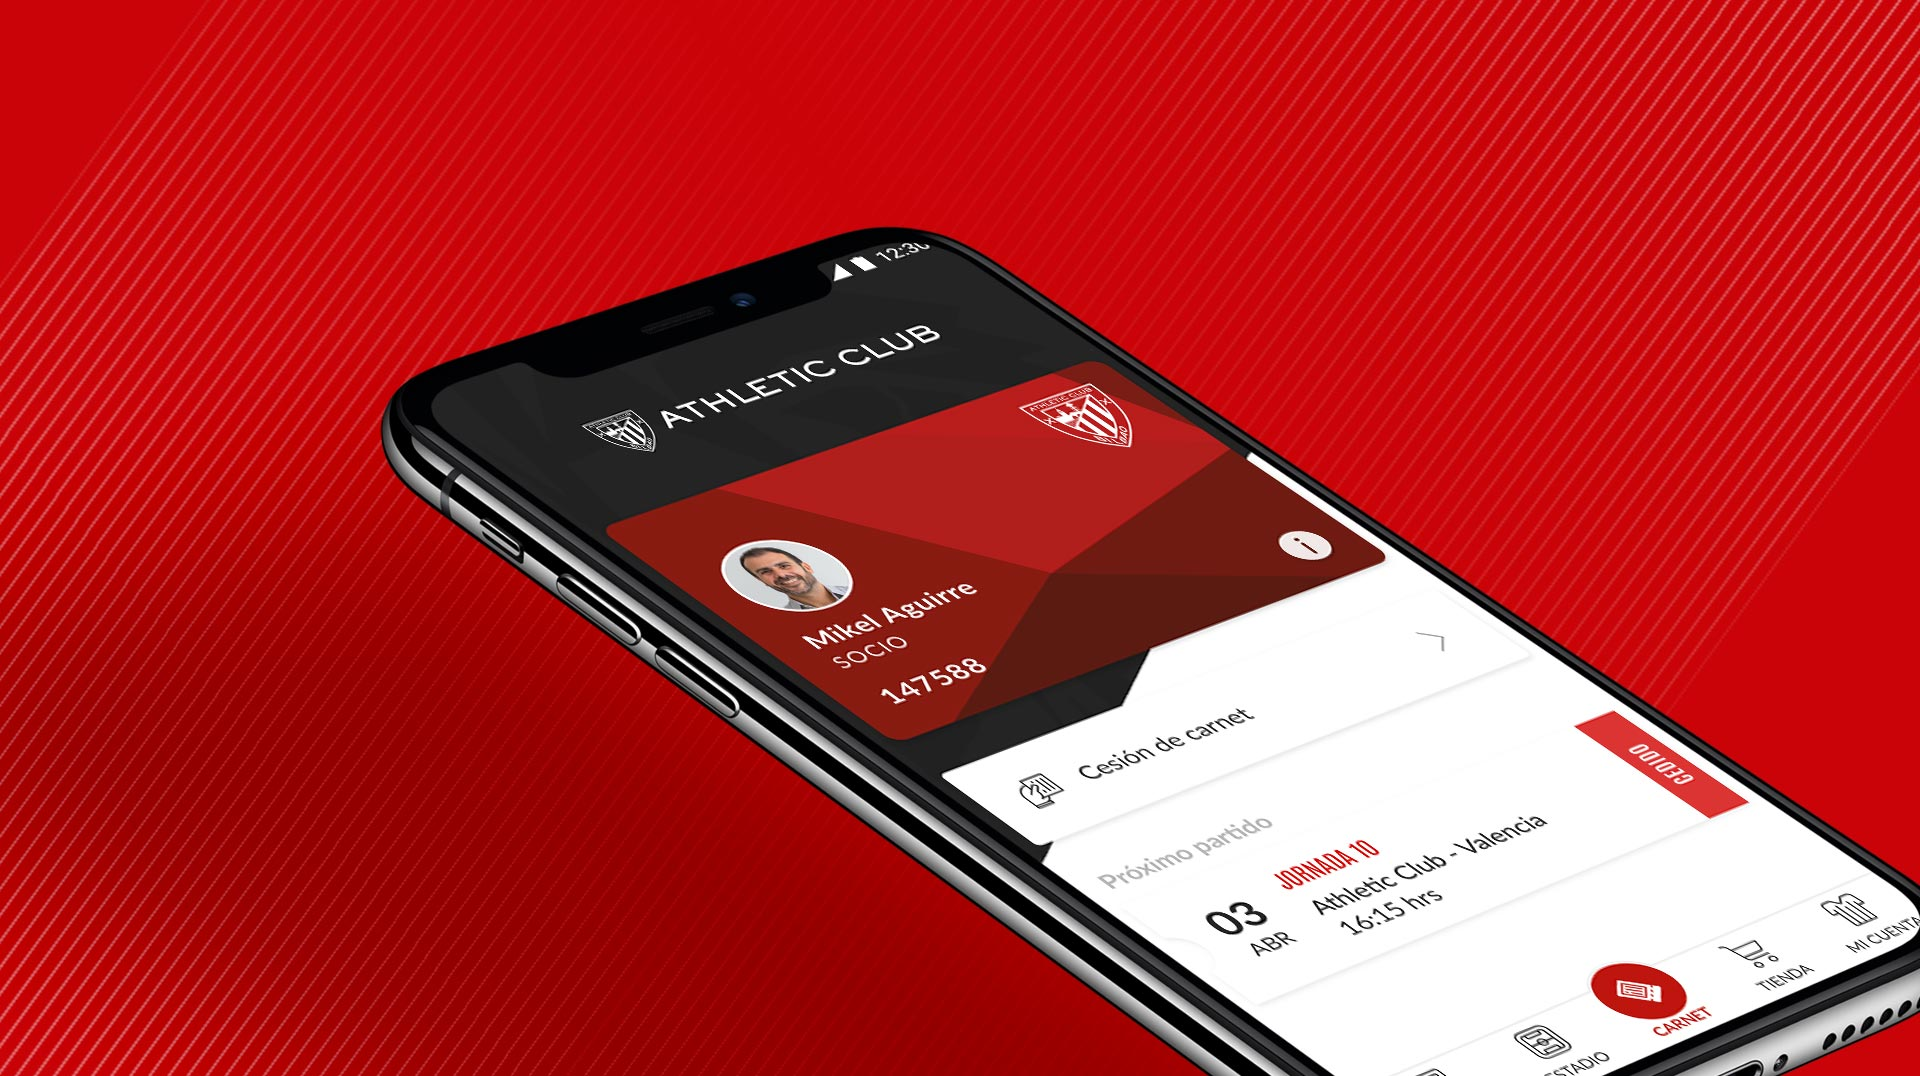 App ATHLETICKET: ya está aquí el carnet digital